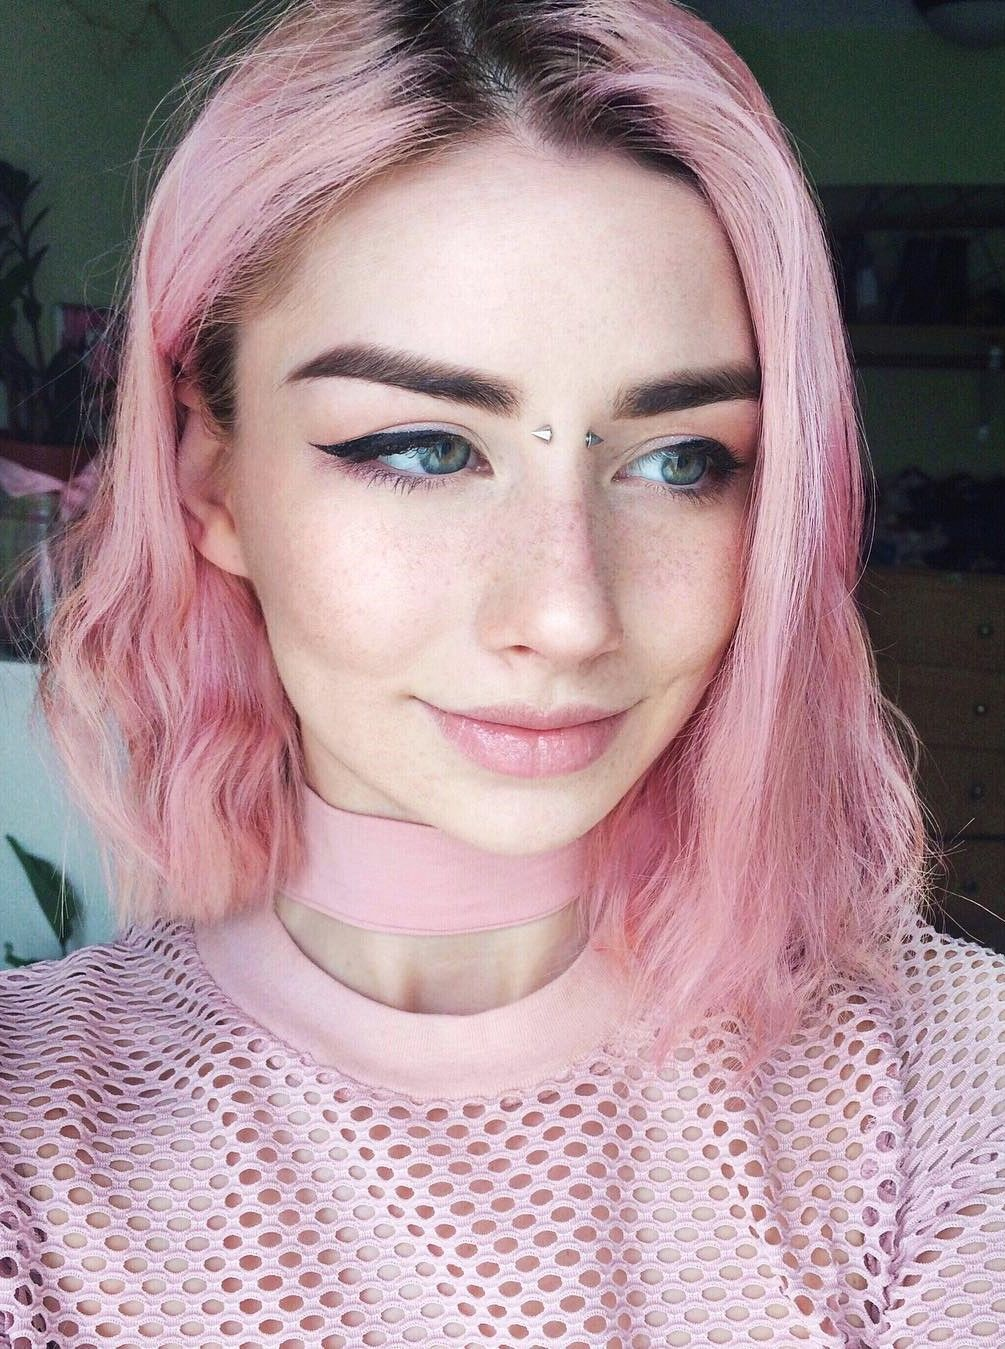 35 Edgy Hair Color Ideas To Try Right Now Pastel Pink Hair Pastel Pink Hair Dye Pink Hair Dye